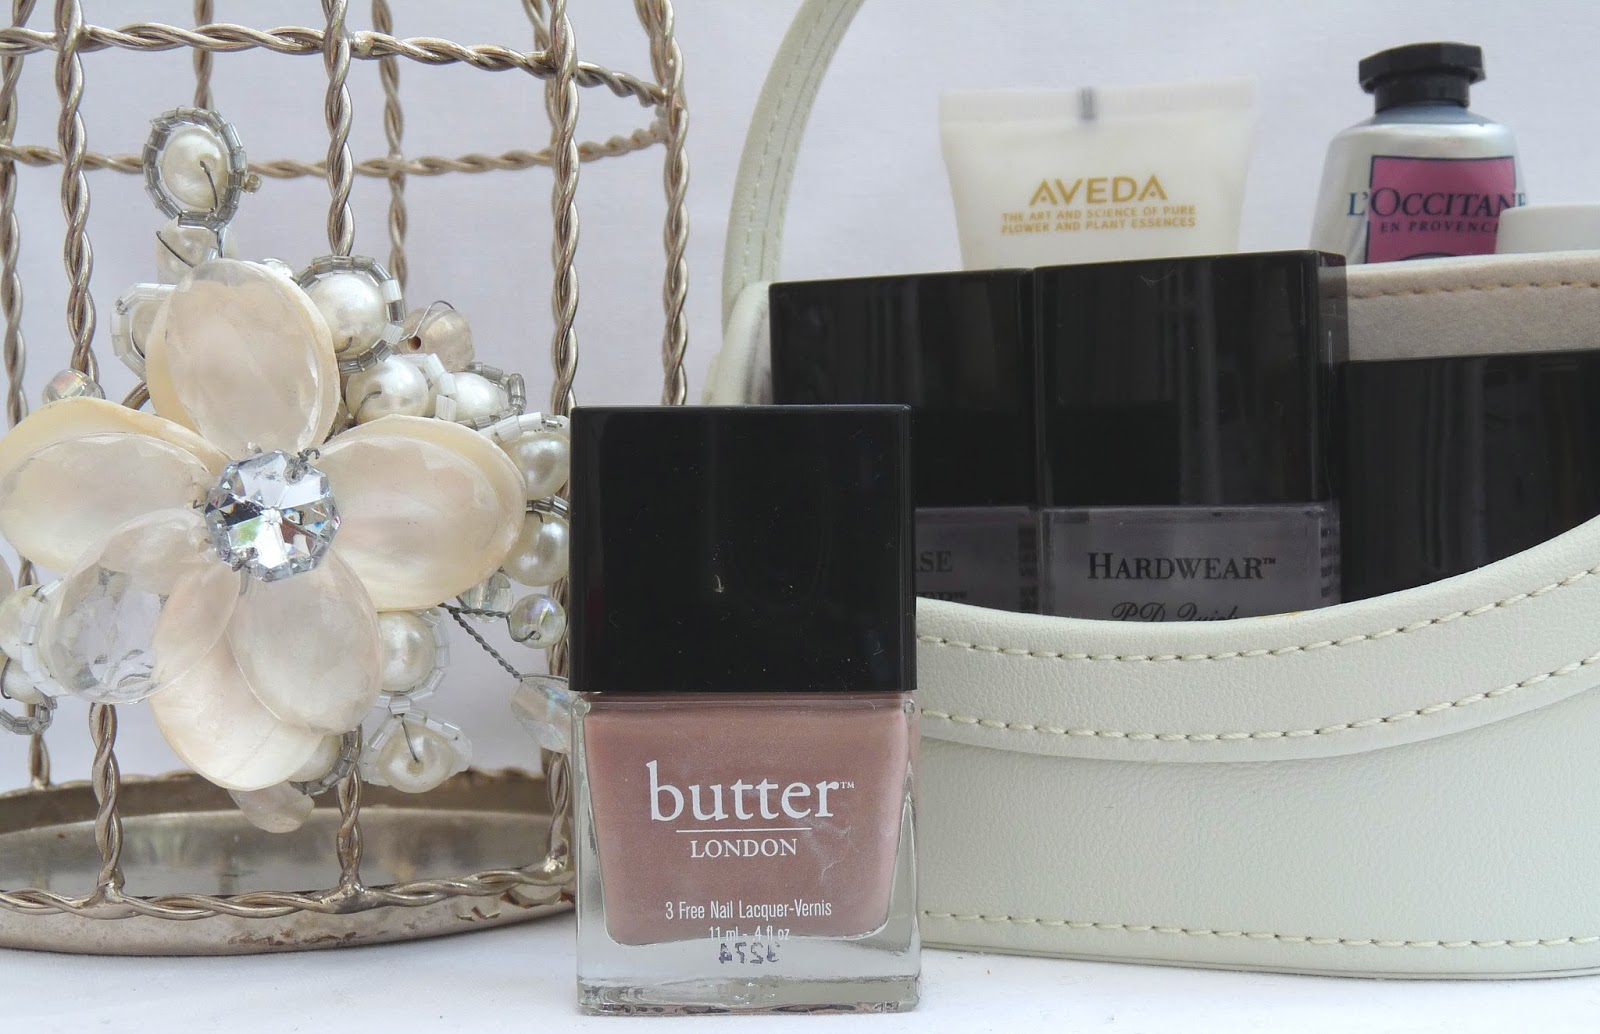 Review of Butter London Nail Polish - Yummy Mummy